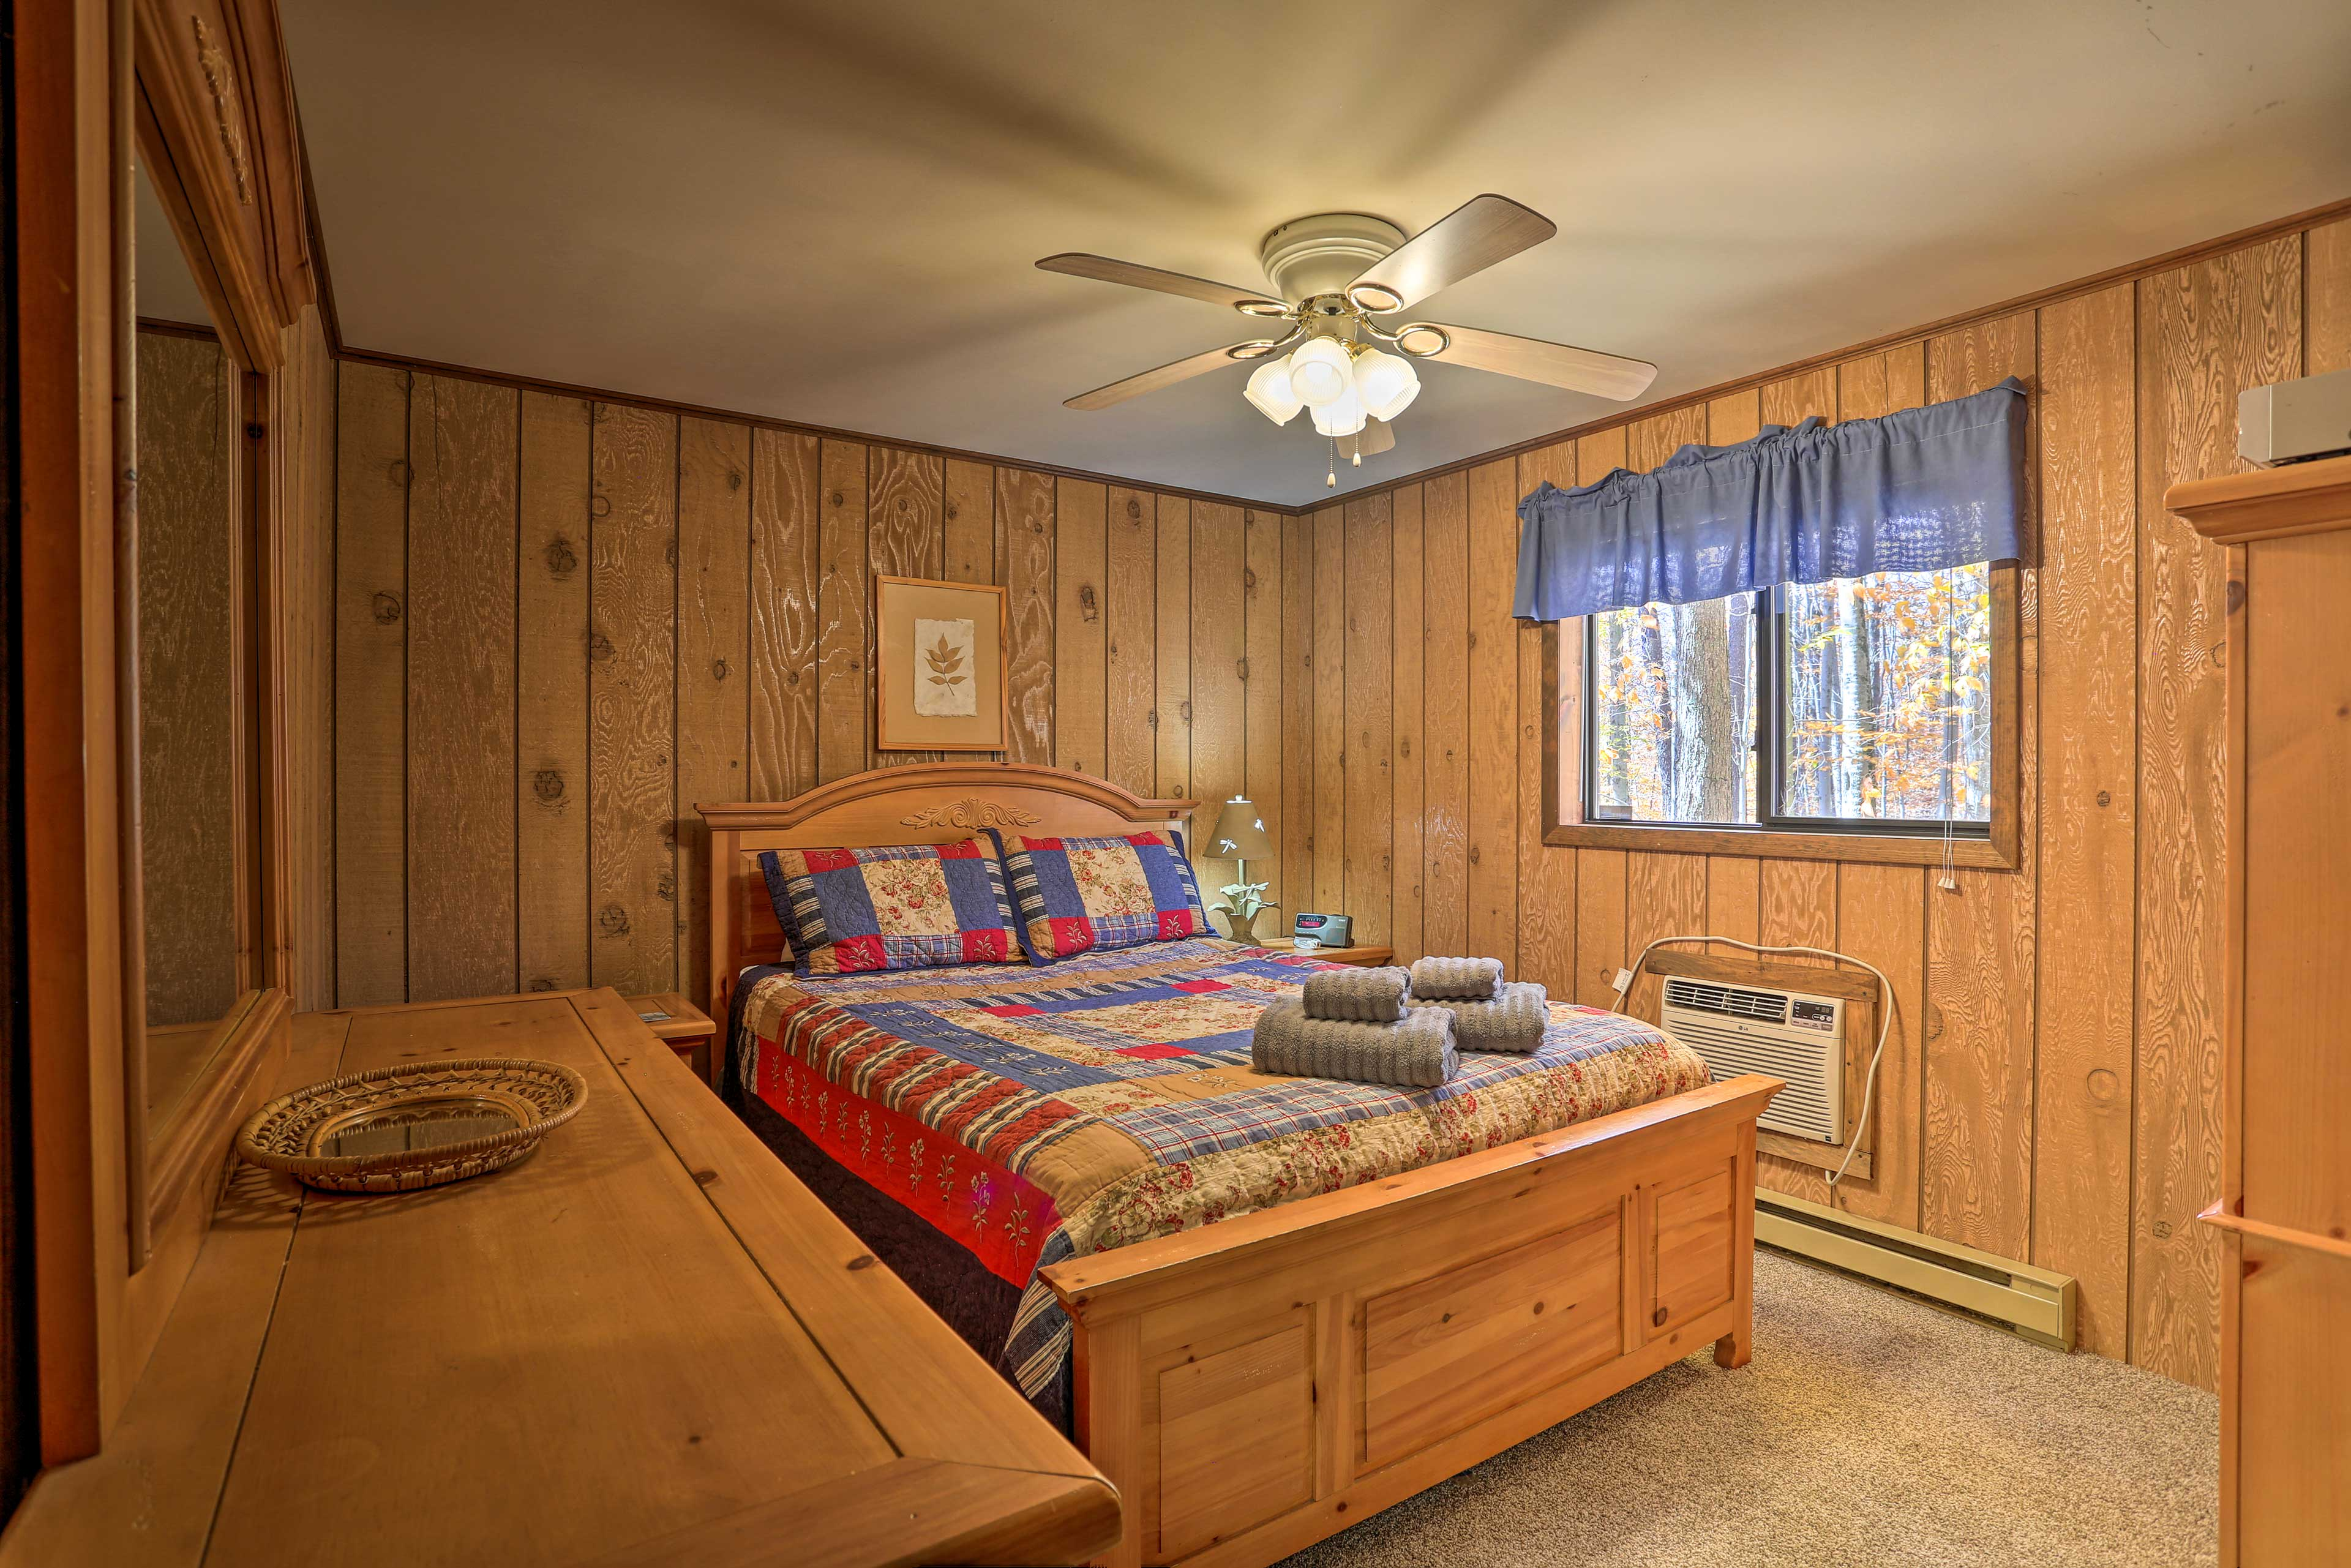 The master bedroom is complete with a queen bed and spacious dresser.